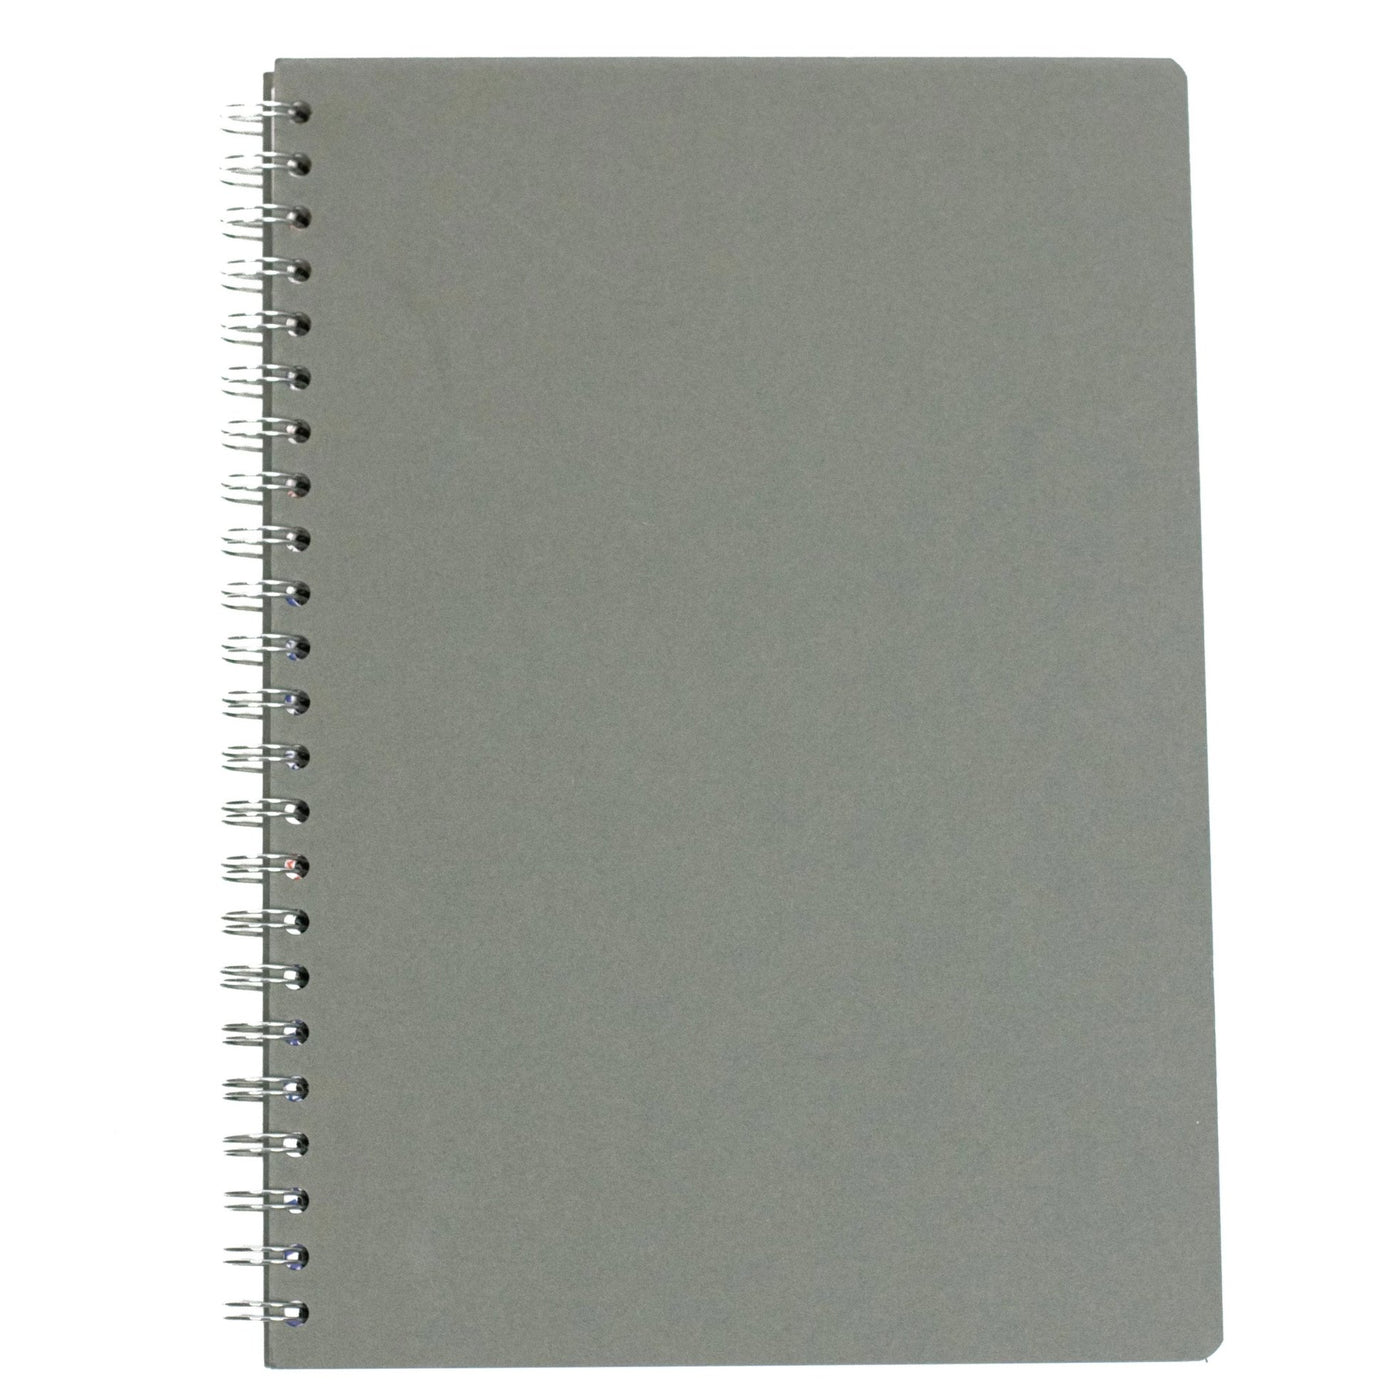 Wirebound eco sketchbooks